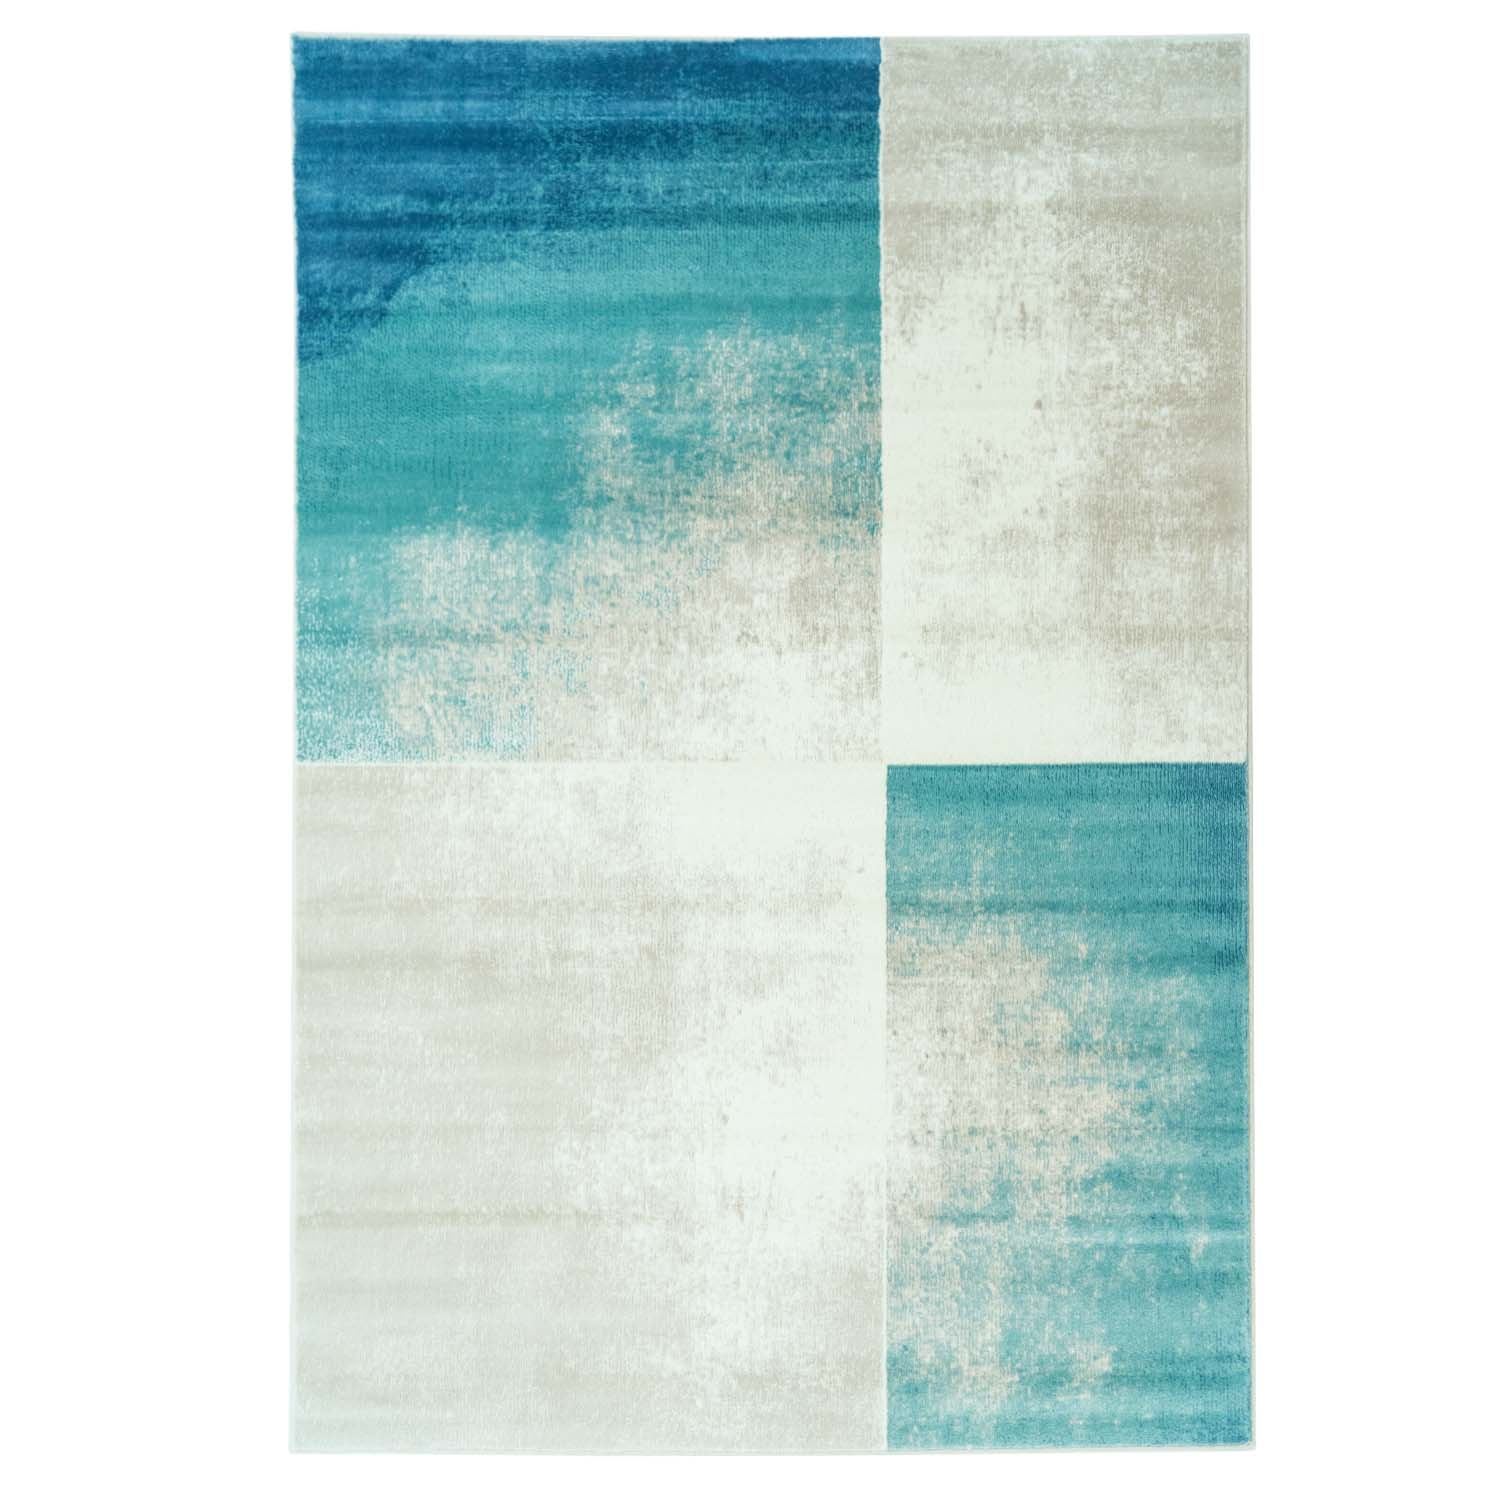 Tapijt Omid Blue Dream Vloerkleed - Omid Carpets